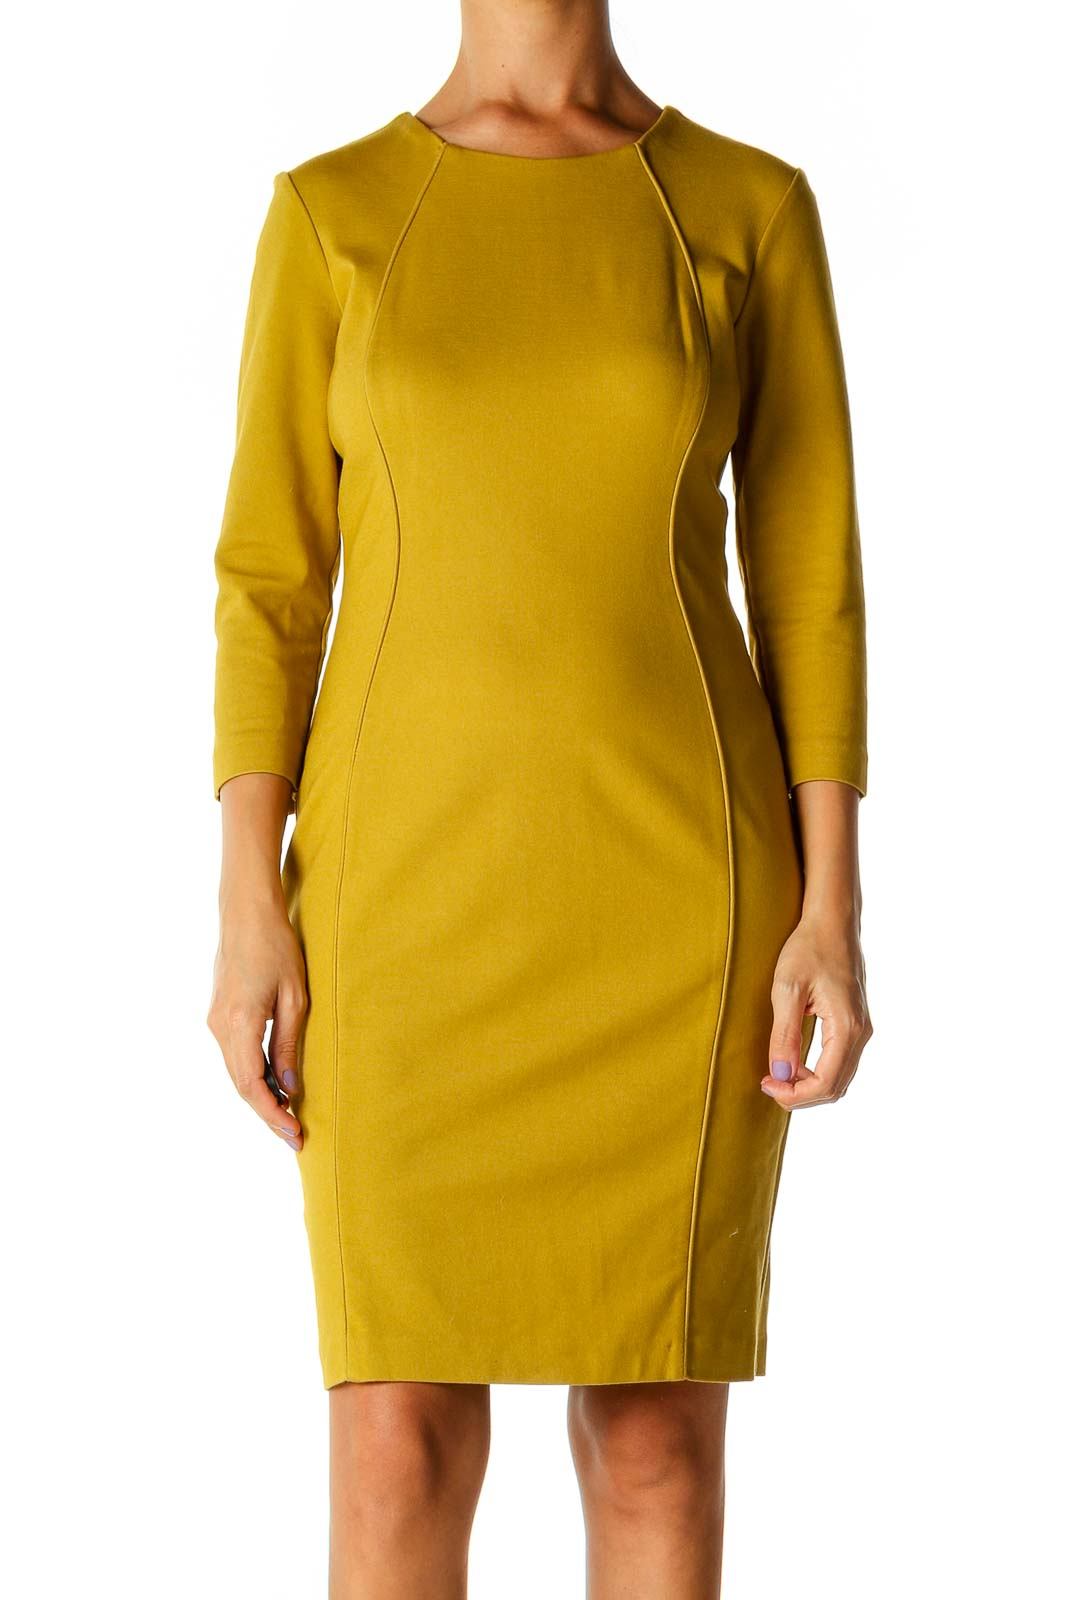 Yellow Solid Casual Sheath Dress Front